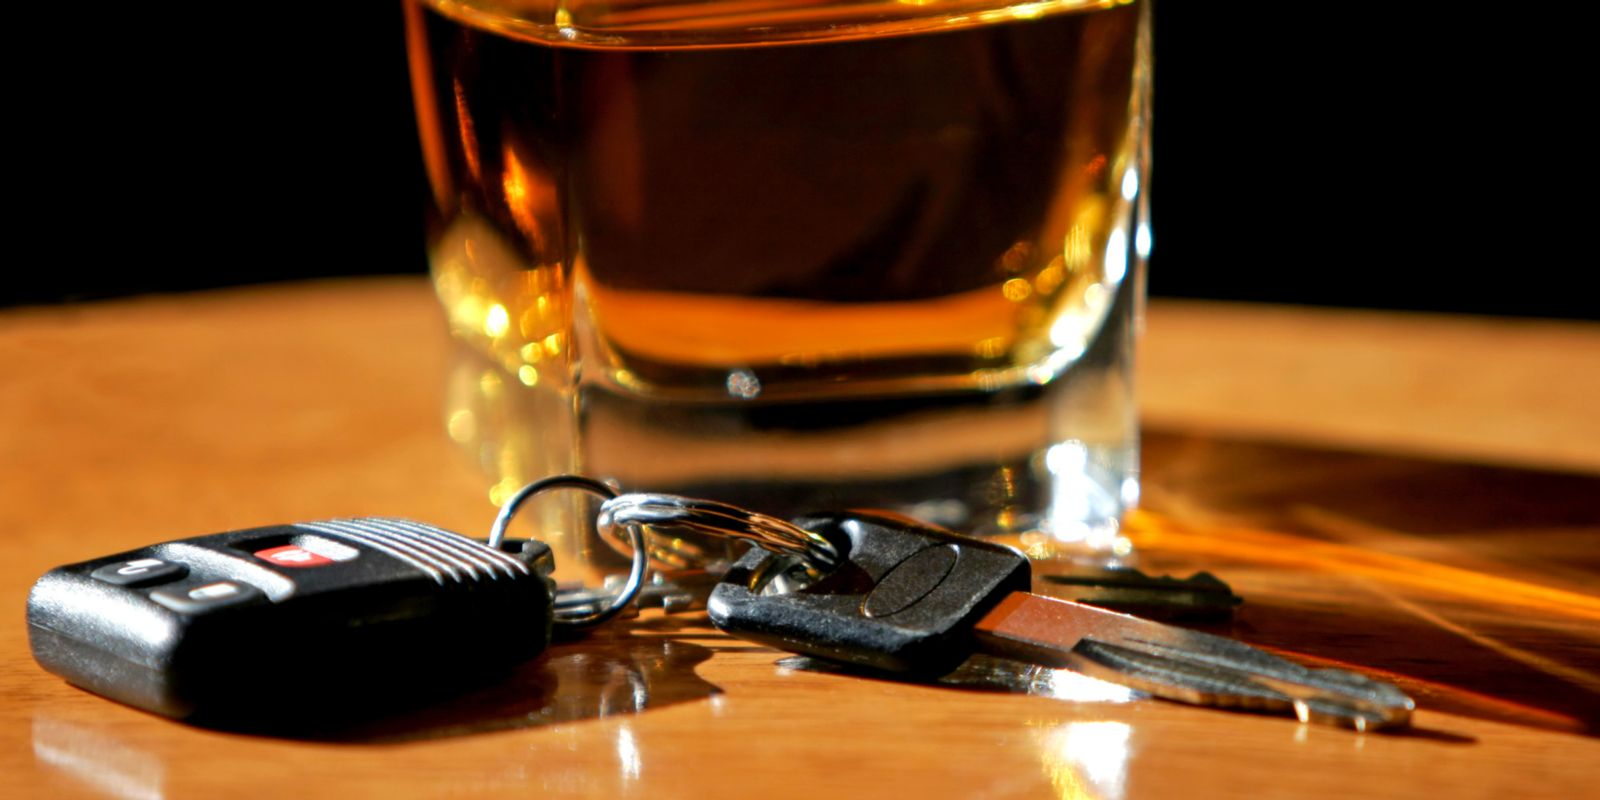 Car Keys next to alcoholic drink for drinking and driving